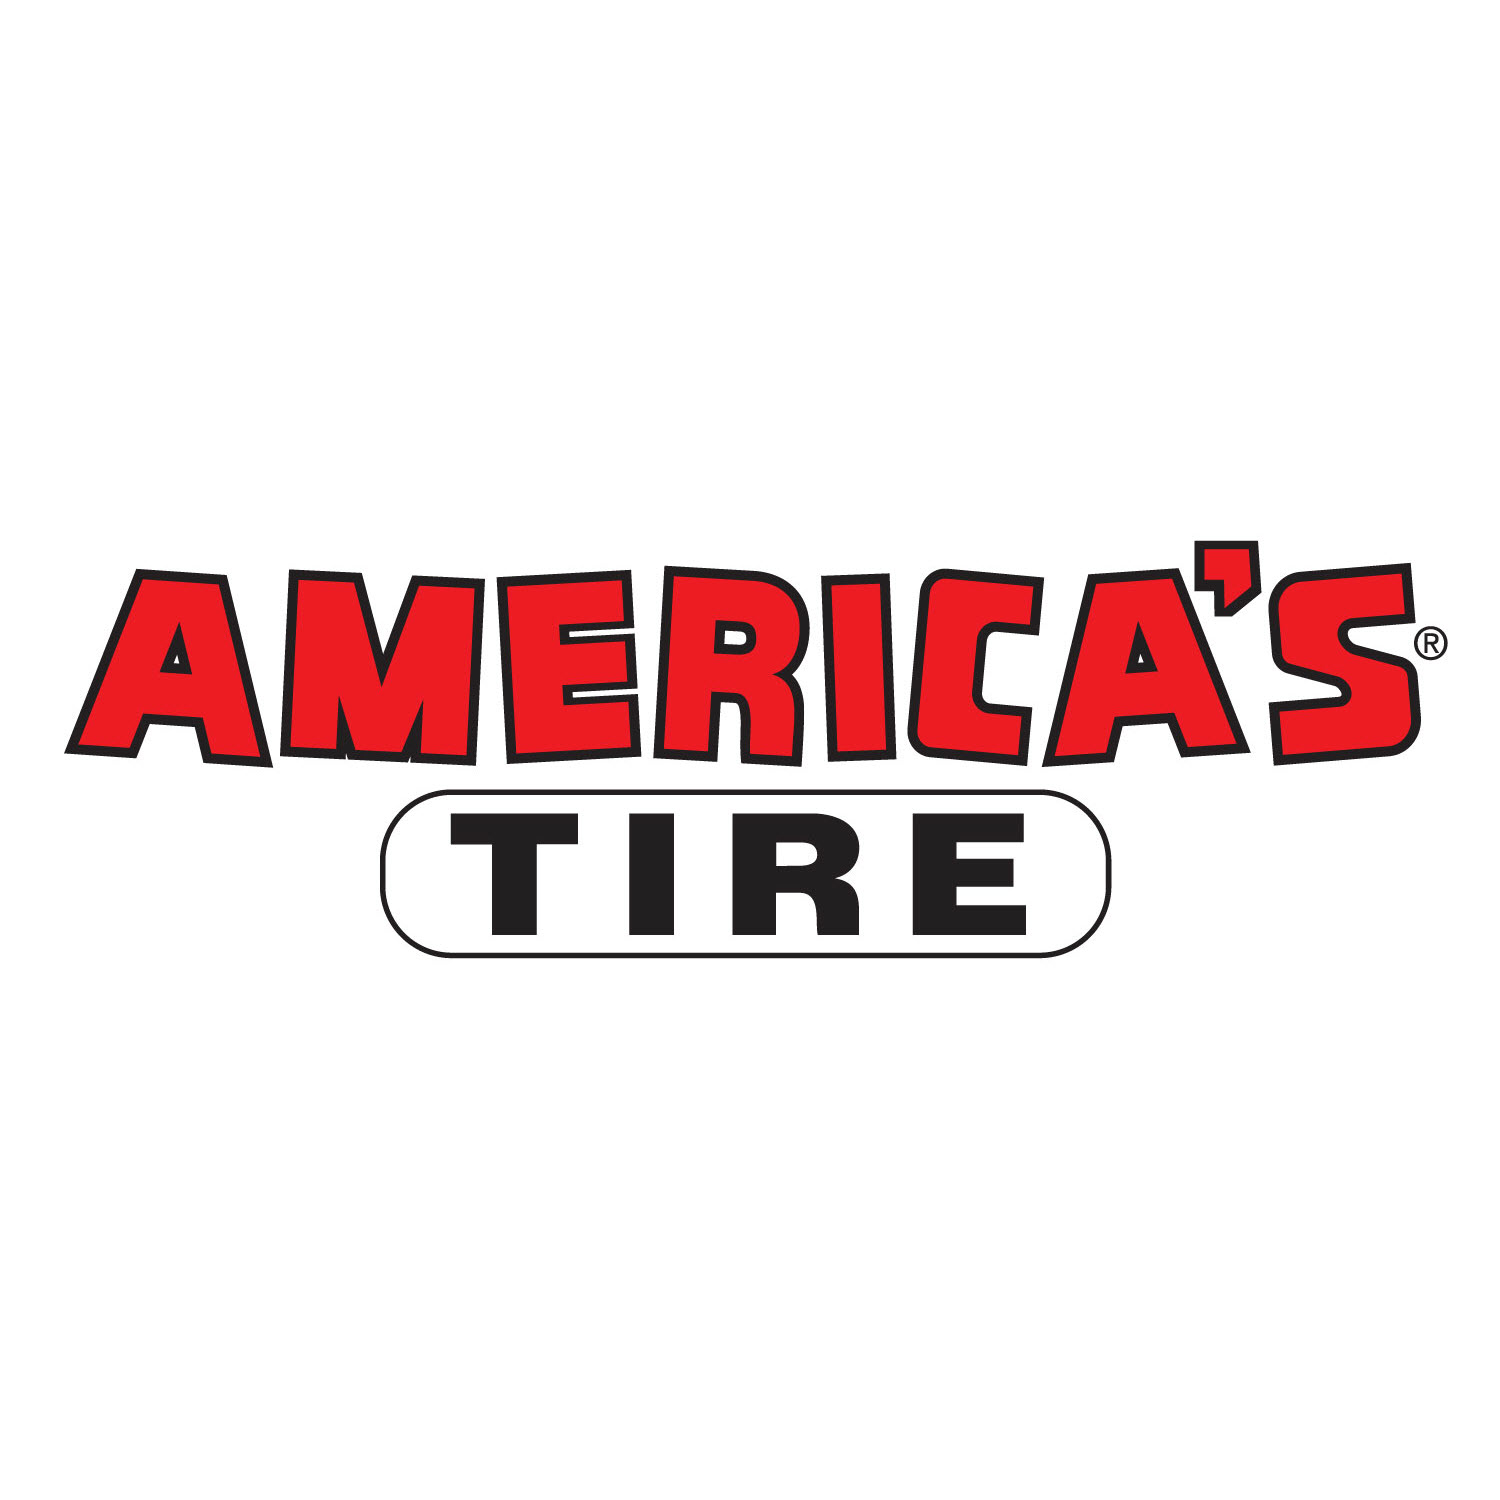 America's Tire - Clackamas, OR 97015 - (503)652-4353 | ShowMeLocal.com